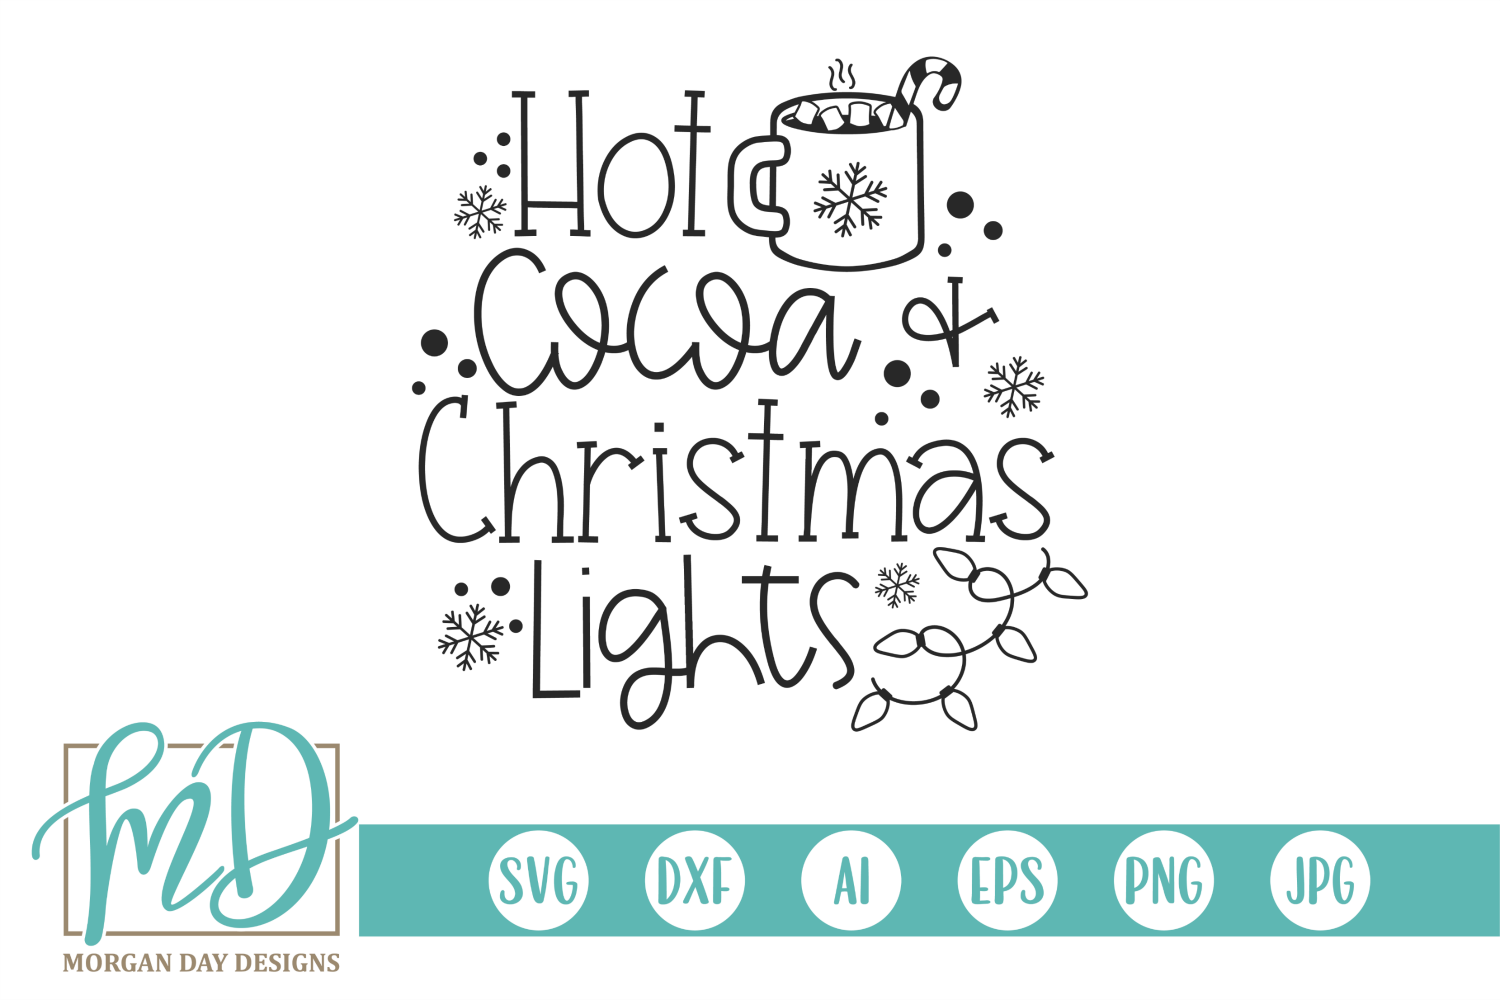 Download Free Hot Cocoa And Christmas Lights Graphic By Morgan Day Designs for Cricut Explore, Silhouette and other cutting machines.